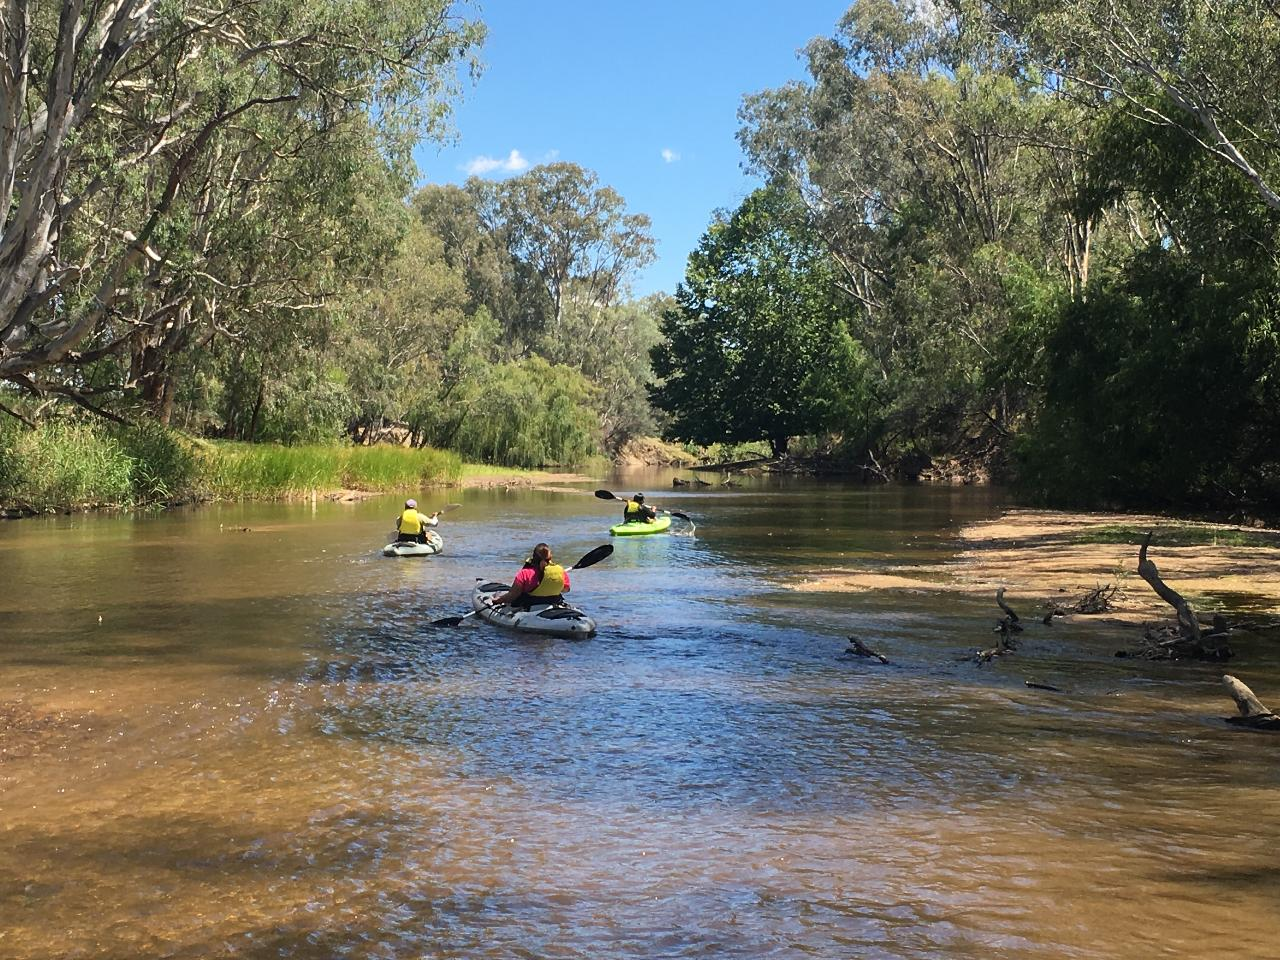 Kayak Overnight - Build your own adventure on the Ovens River - Self Guided